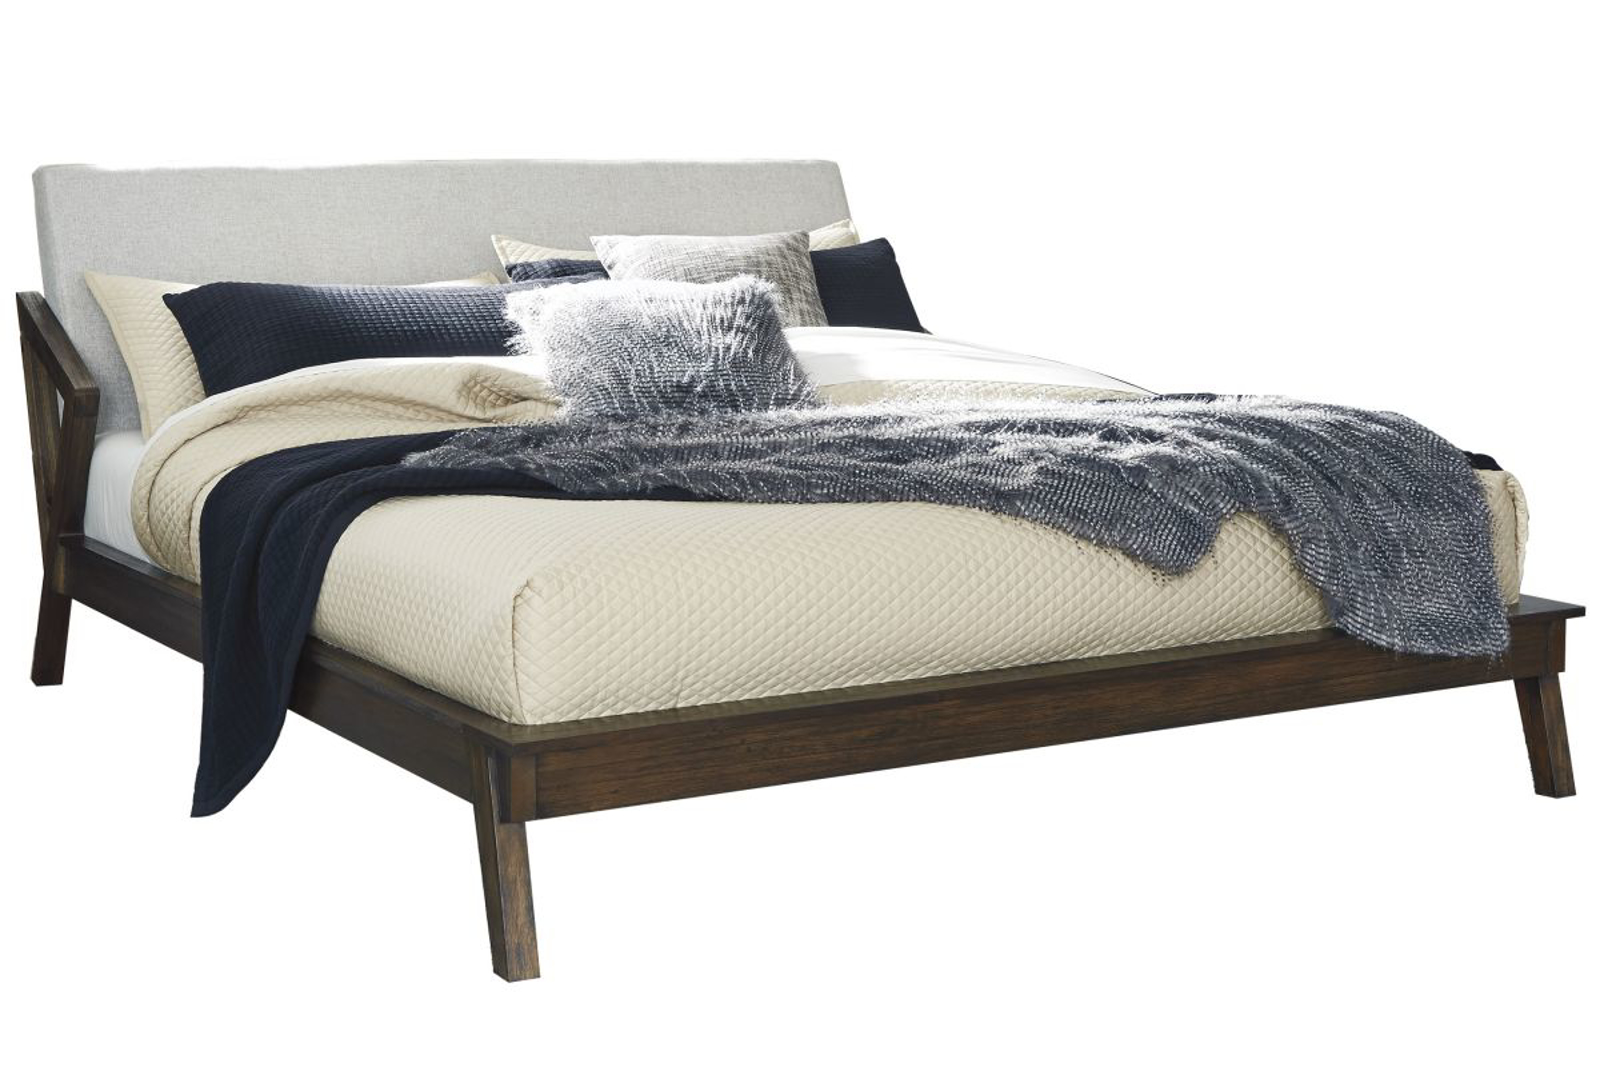 Picture of Kisper Queen Size Bed